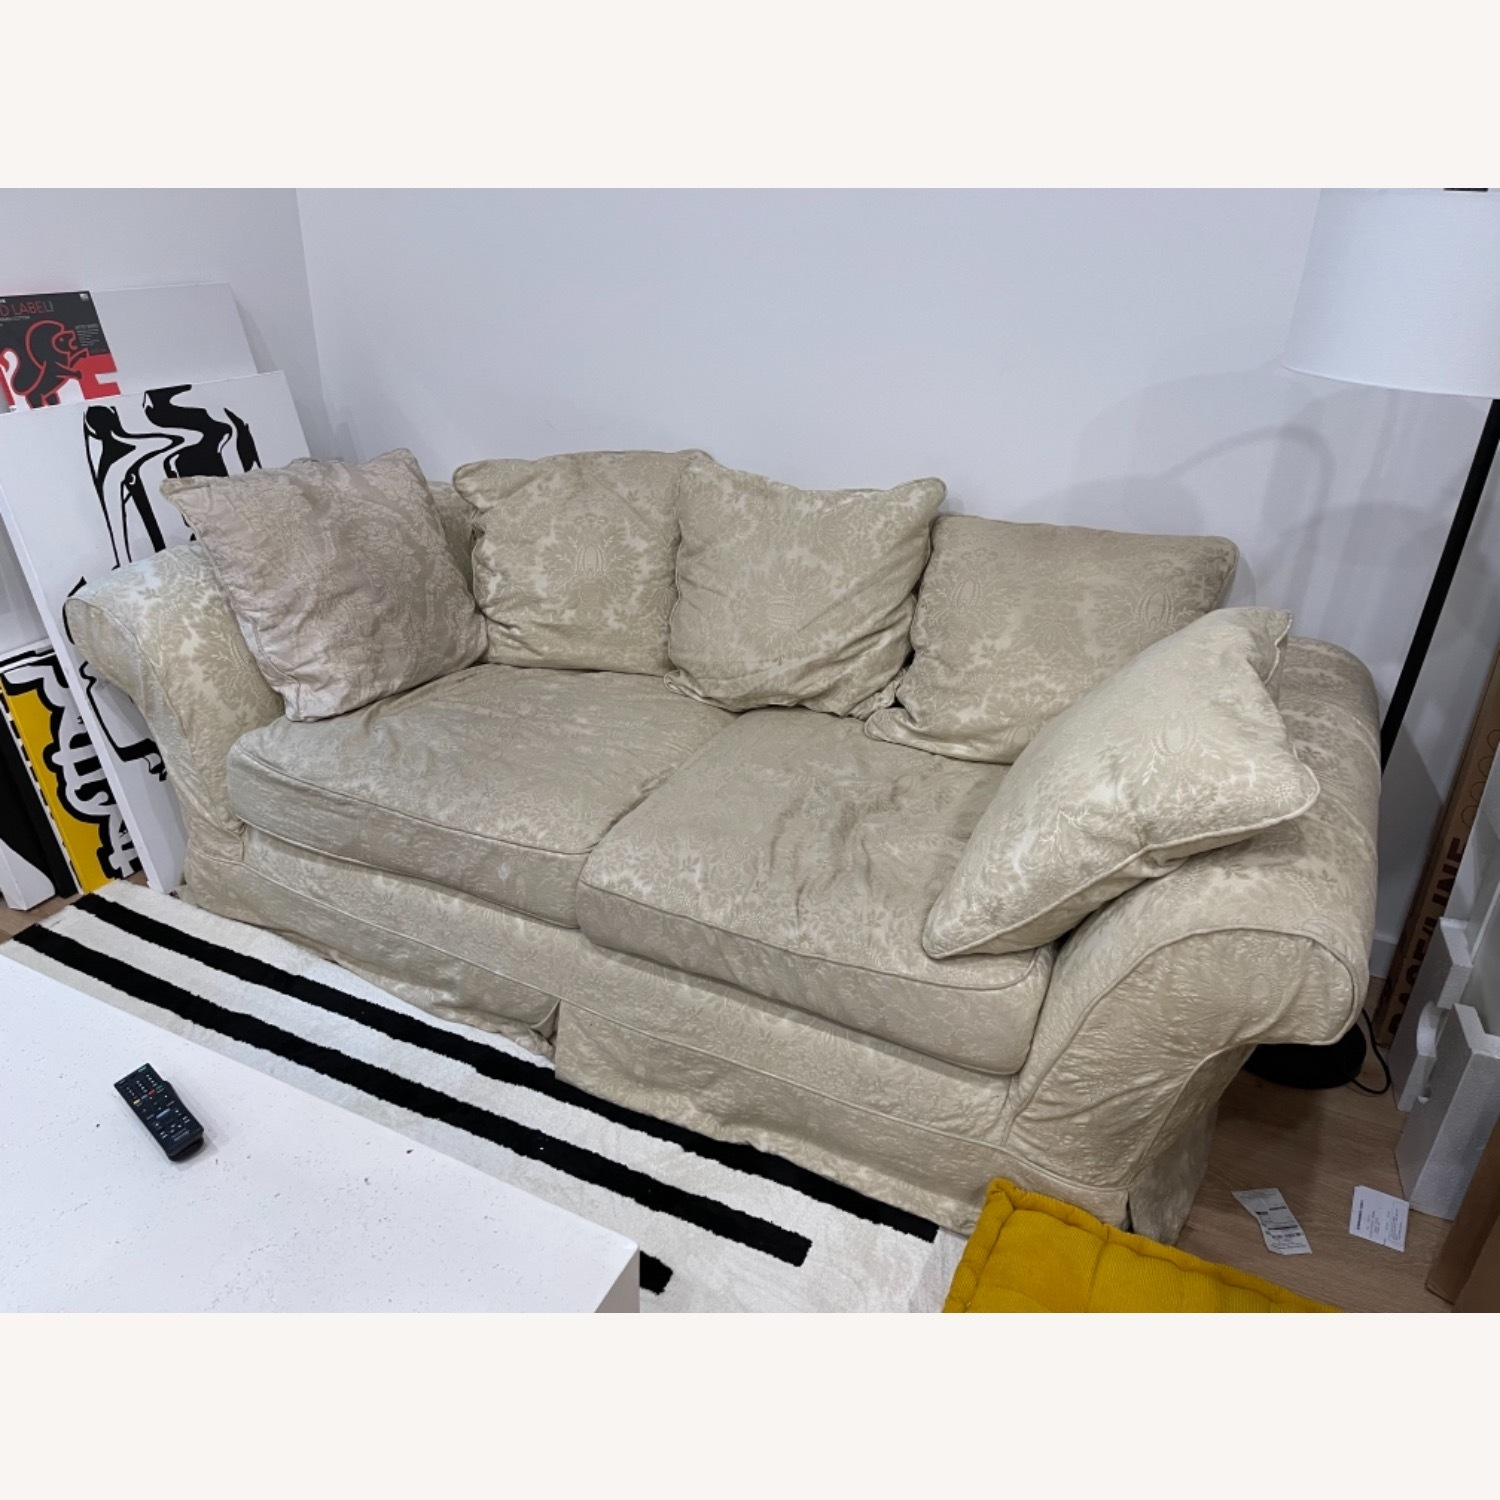 Shabby chic 2 Seater Sofa in Ivory Damask Pattern - image-1